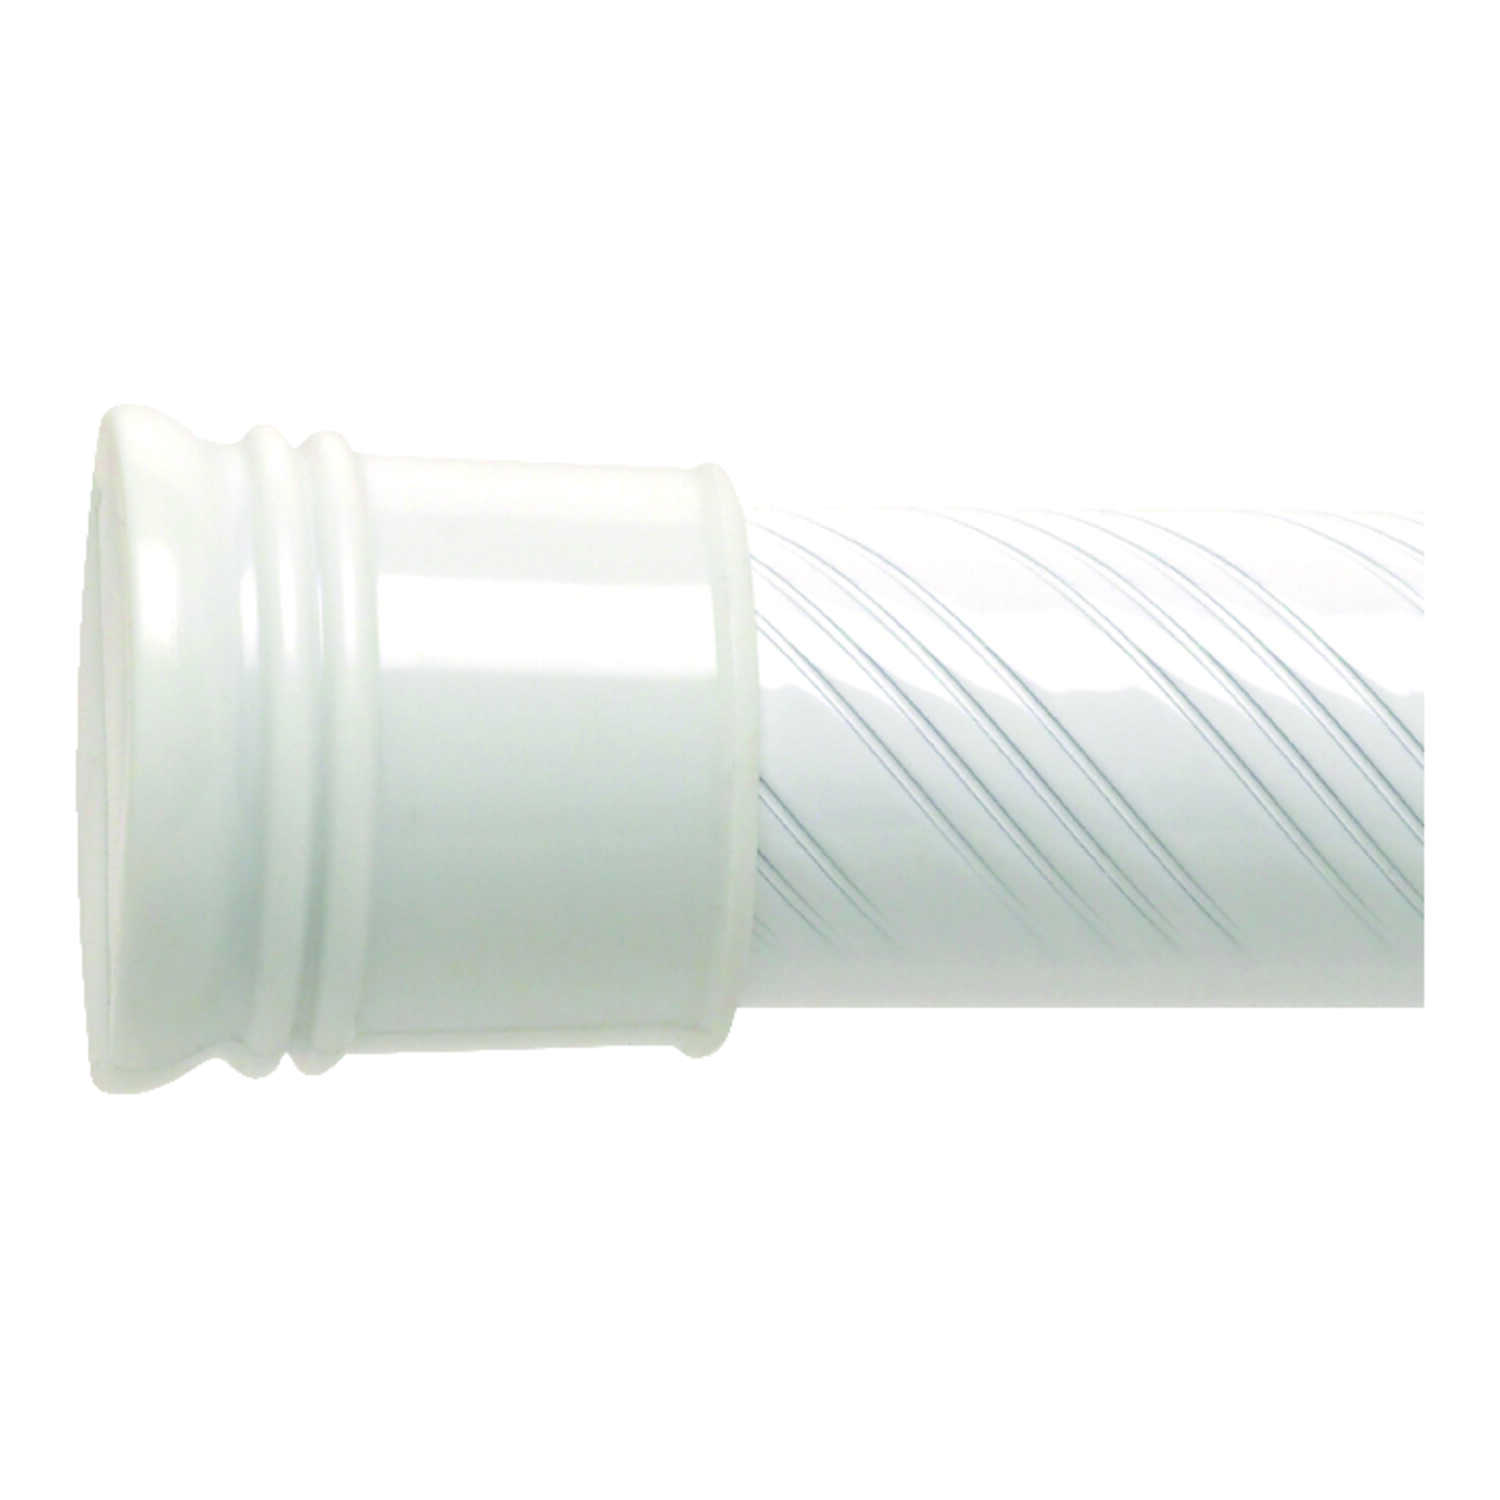 Zenith Shower Curtain Rod 72 In L White Ace Hardware